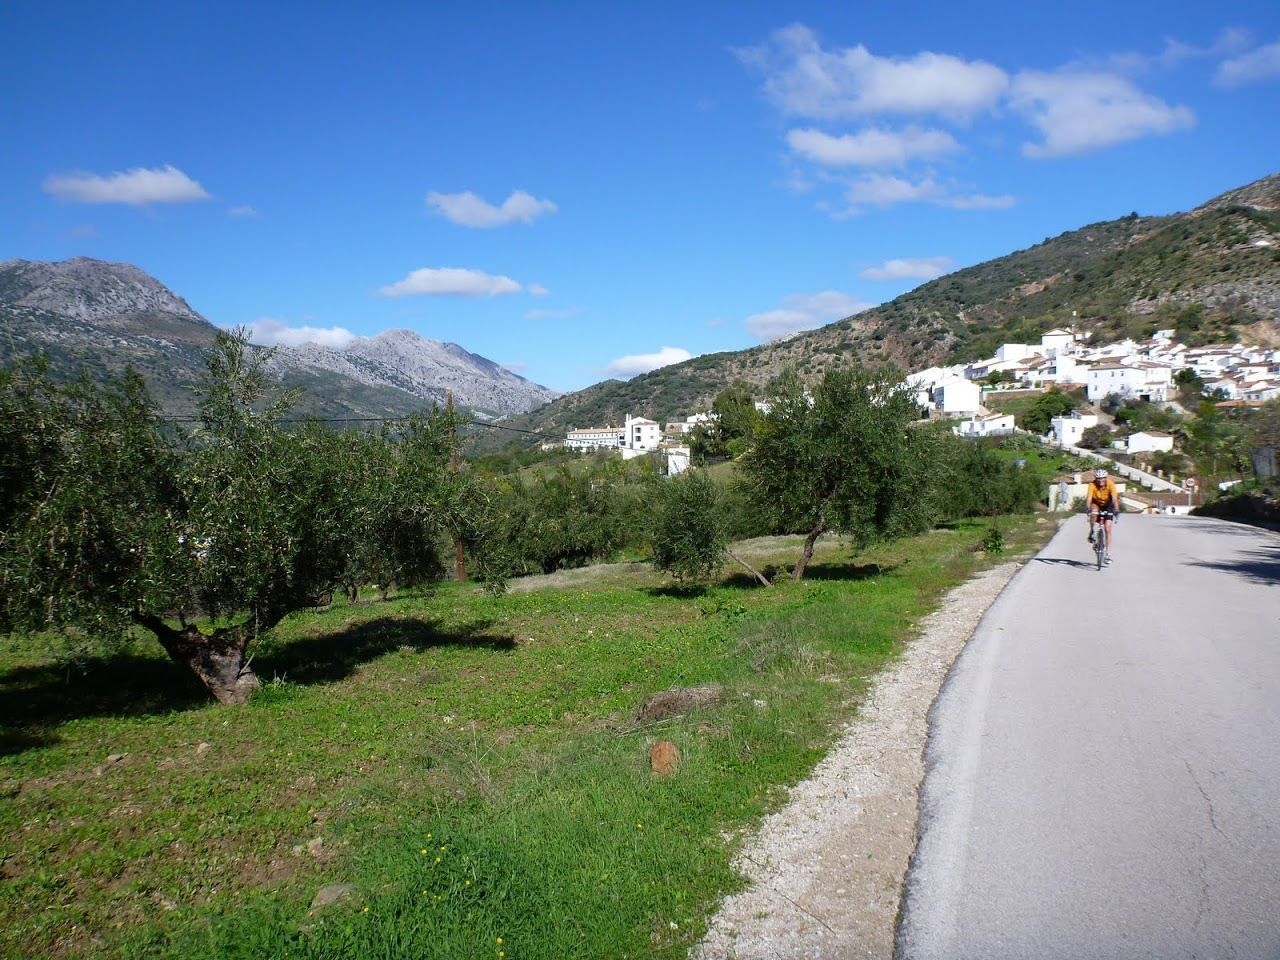 spain road to ronda road cycling holiday 3.jpg - Southern Spain - Roads of Ronda - Self-Guided Road Cycling Holiday - Road Cycling